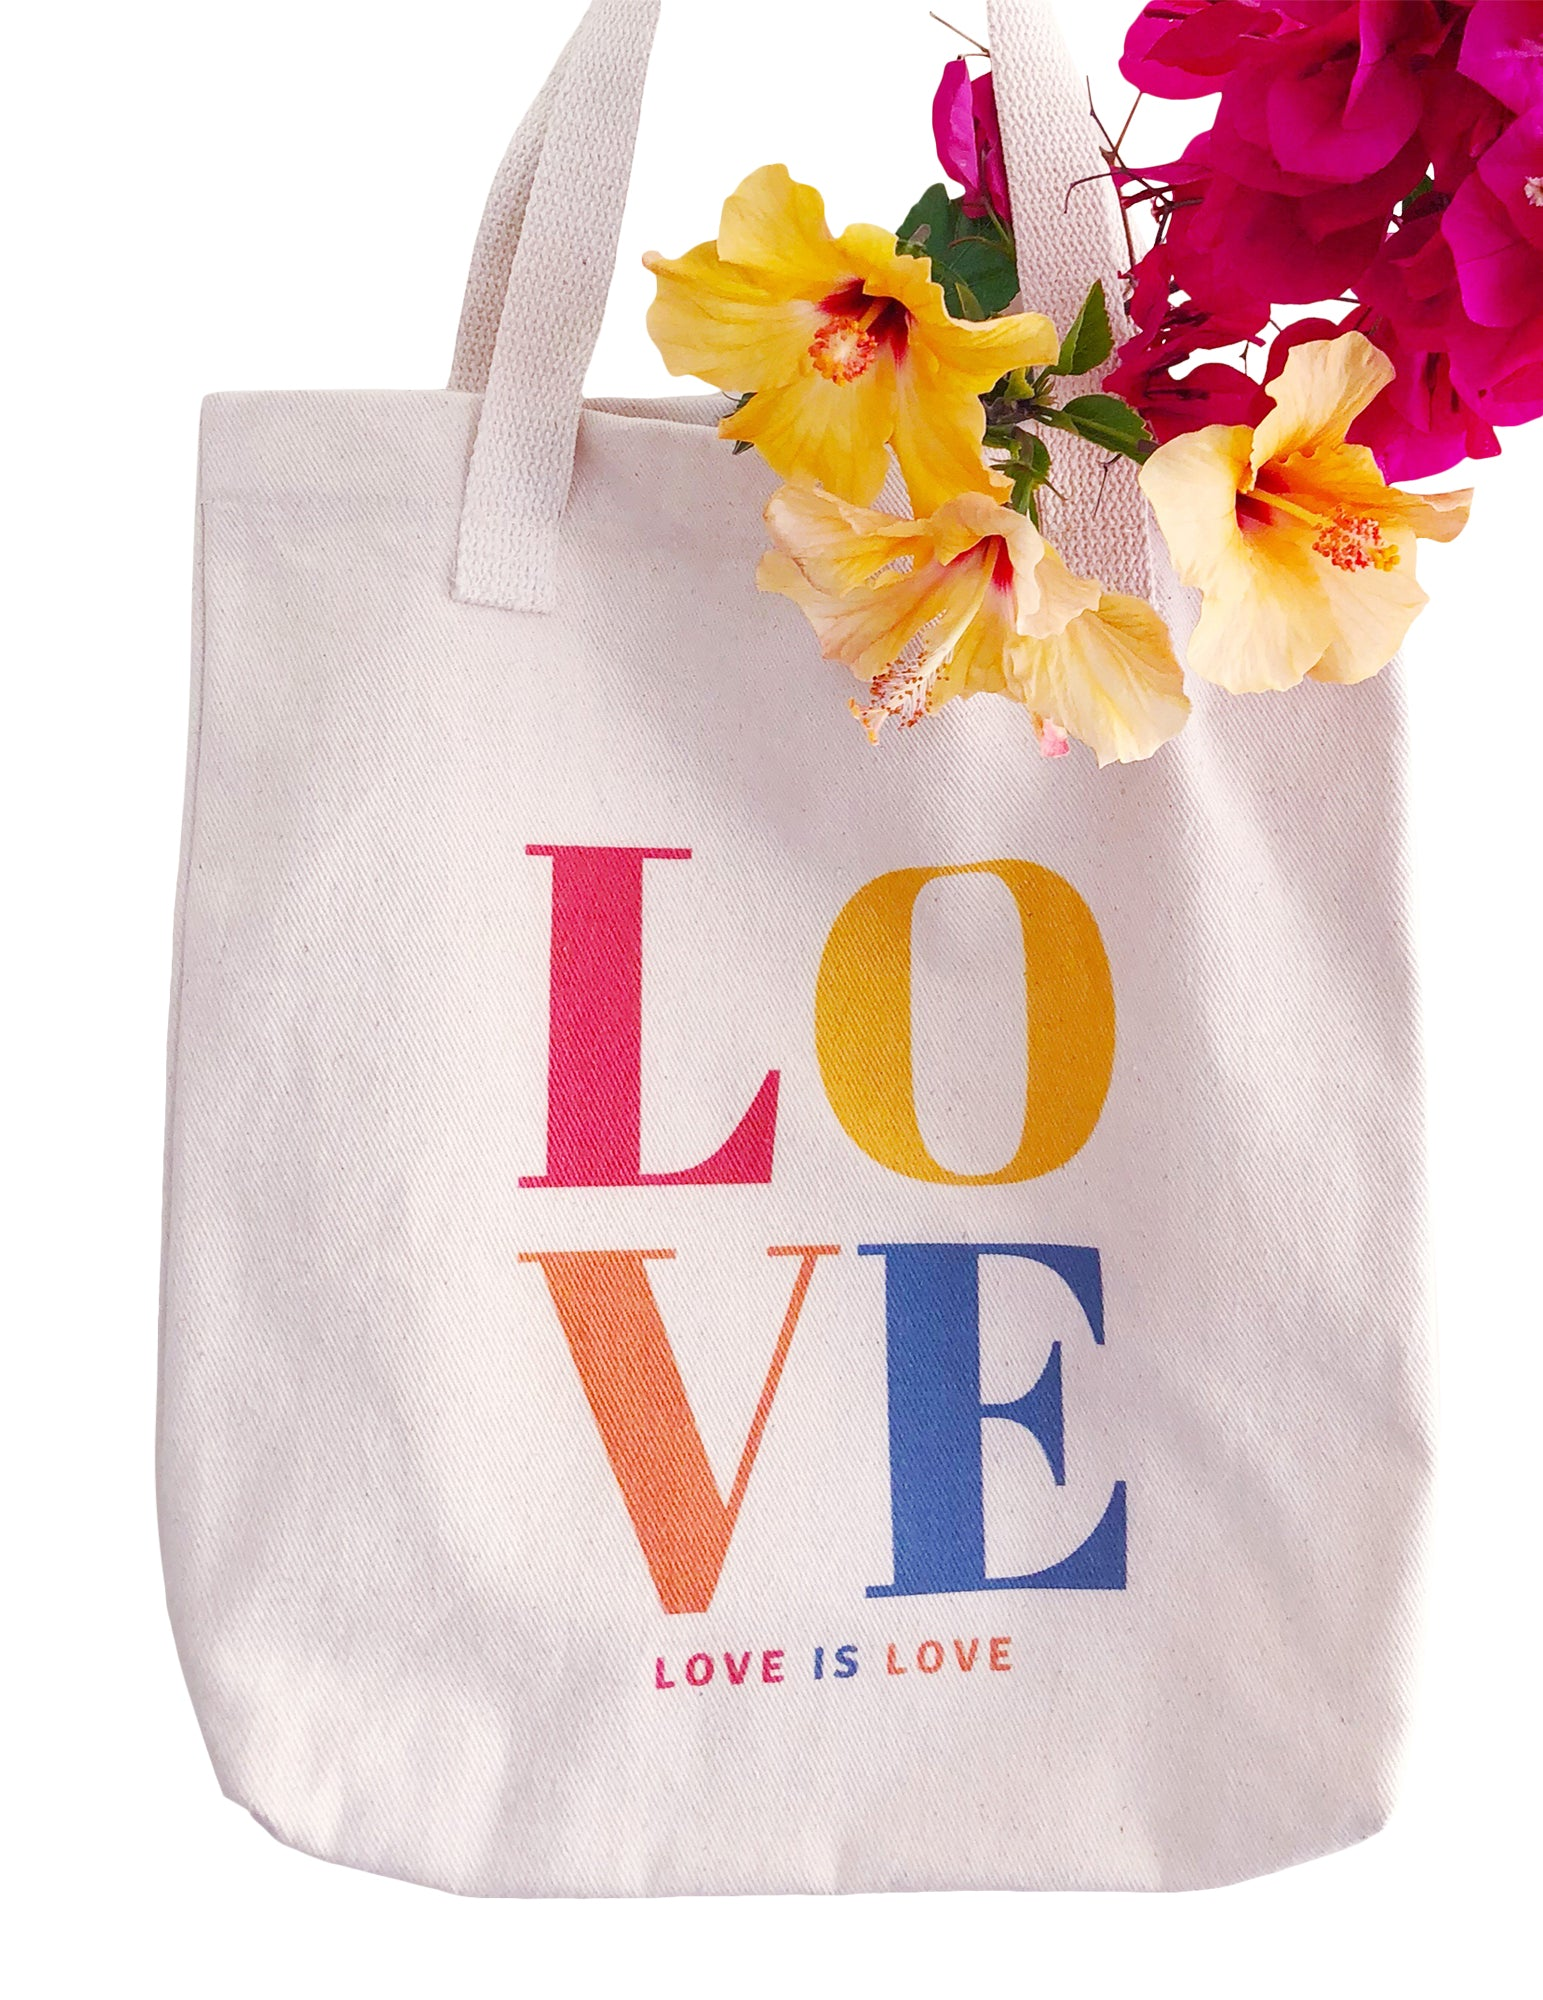 Love is Love Reusable Grocery Tote Bag Cotton Book Bag